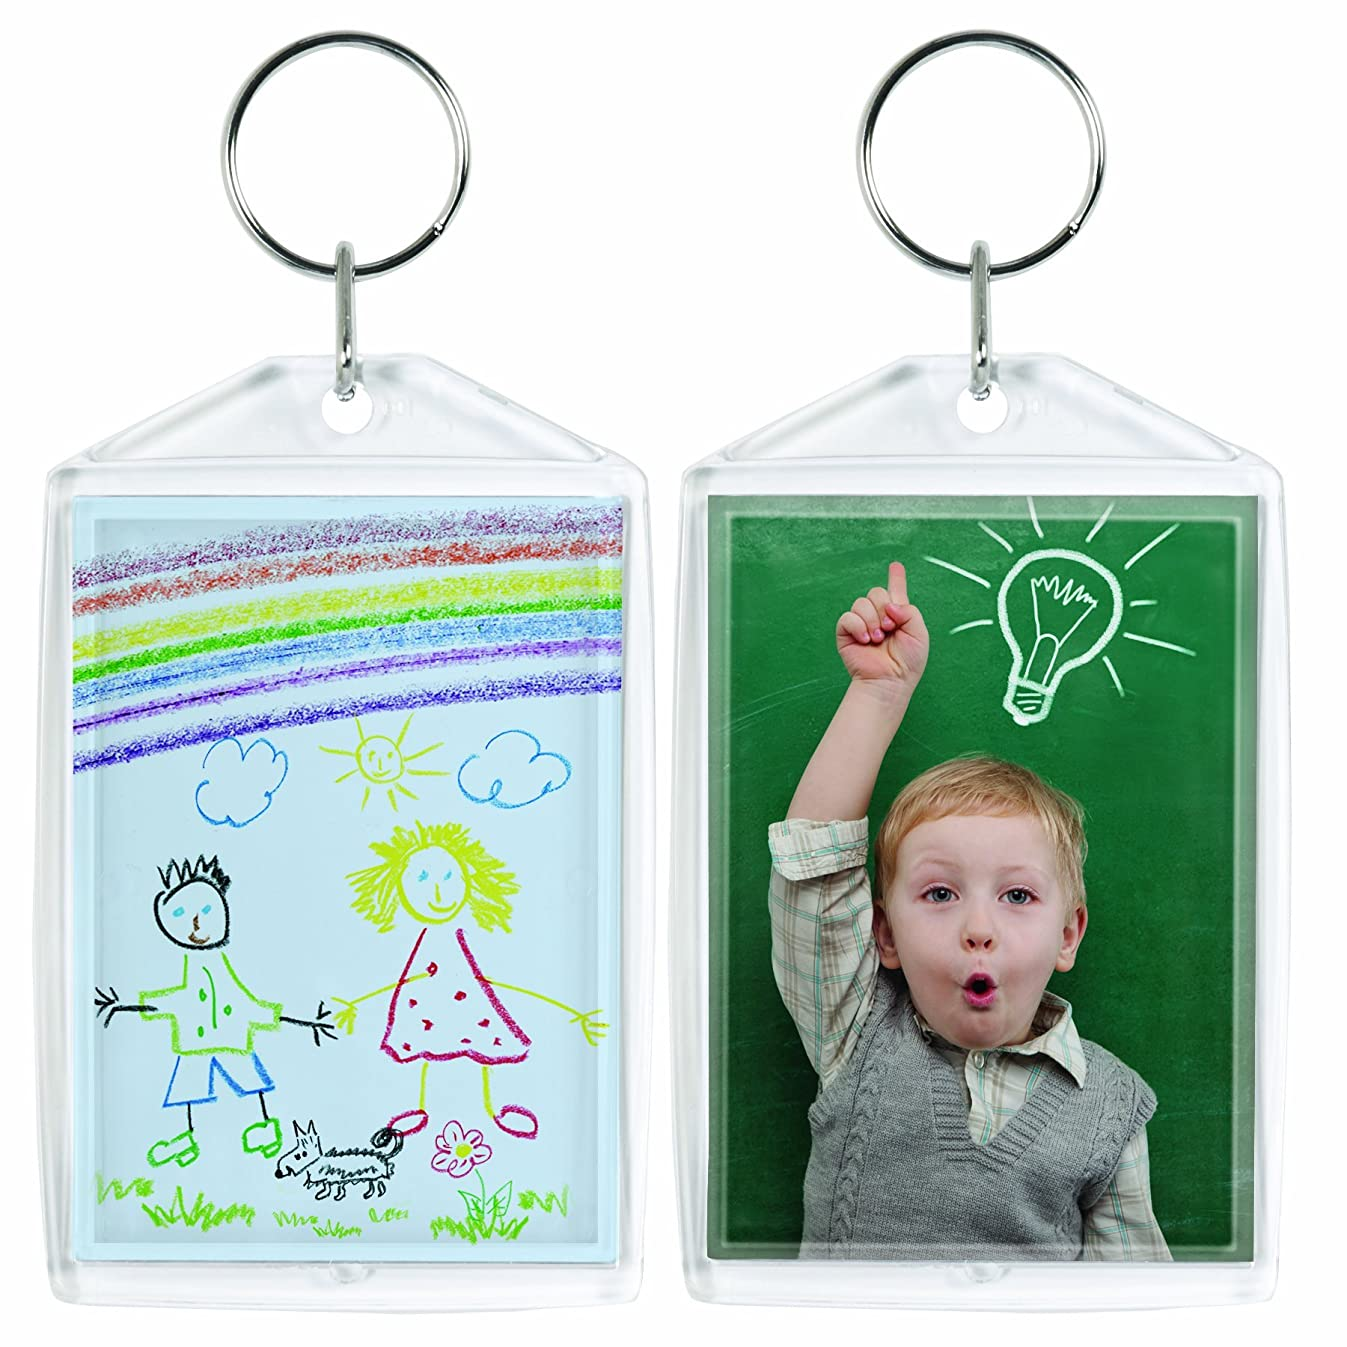 Acrylic Photo Snap-In Keychain - 25 Pack (2